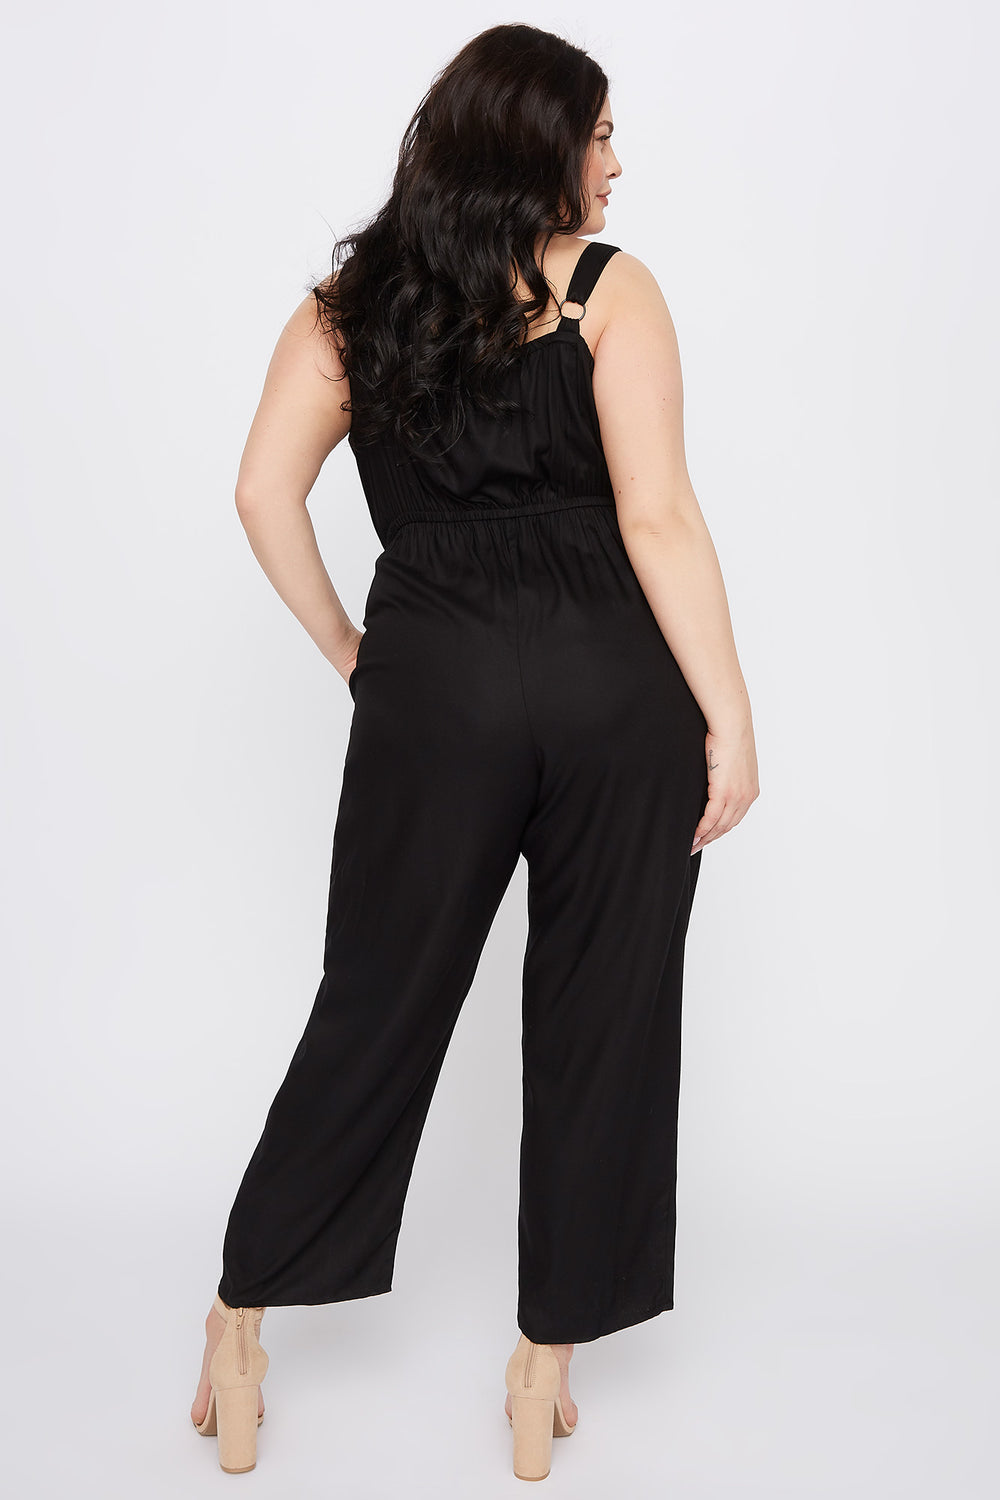 Plus Size Sleeveless Button Jumpsuit Black